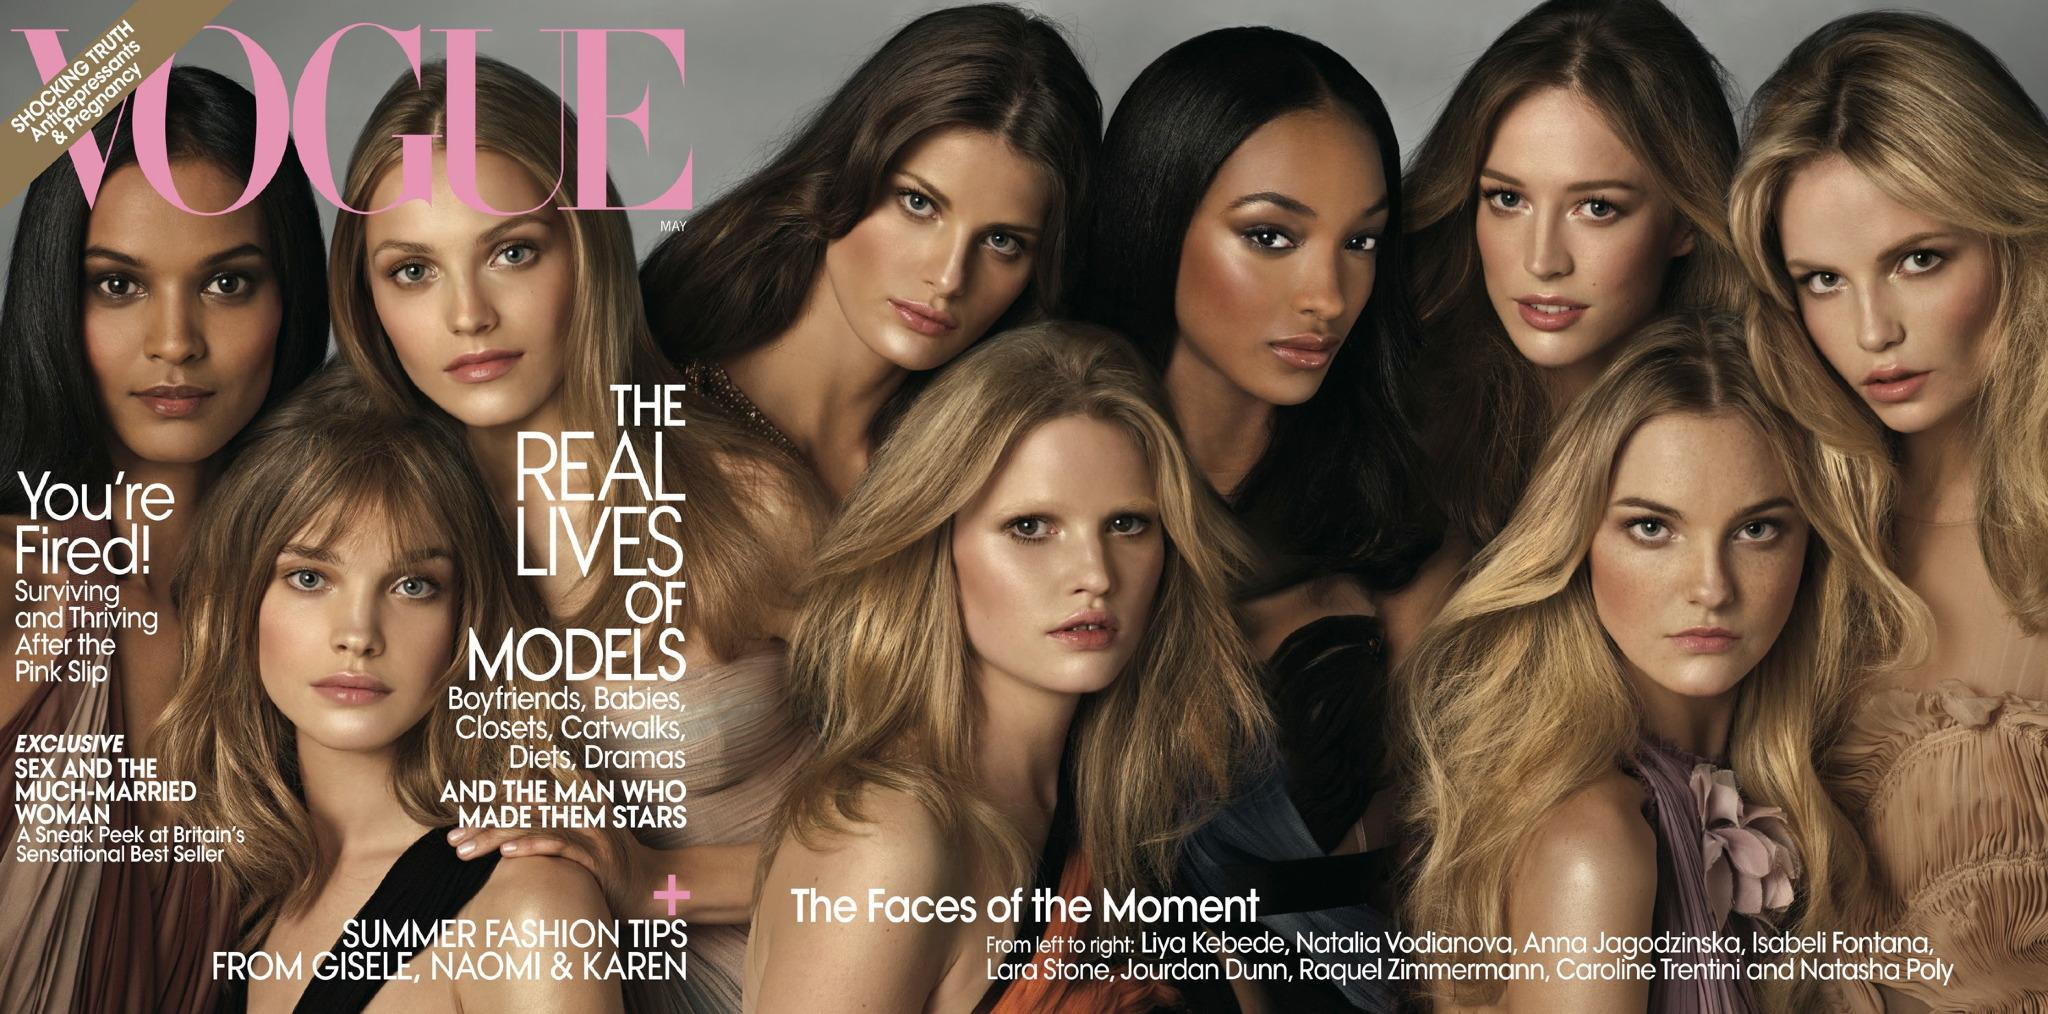 RT @voguemagazine: The gang's all here! A history of the supermodel group Vogue cover: http://t.co/5cWTdXgLLb Photo: Steven Meisel http://t…